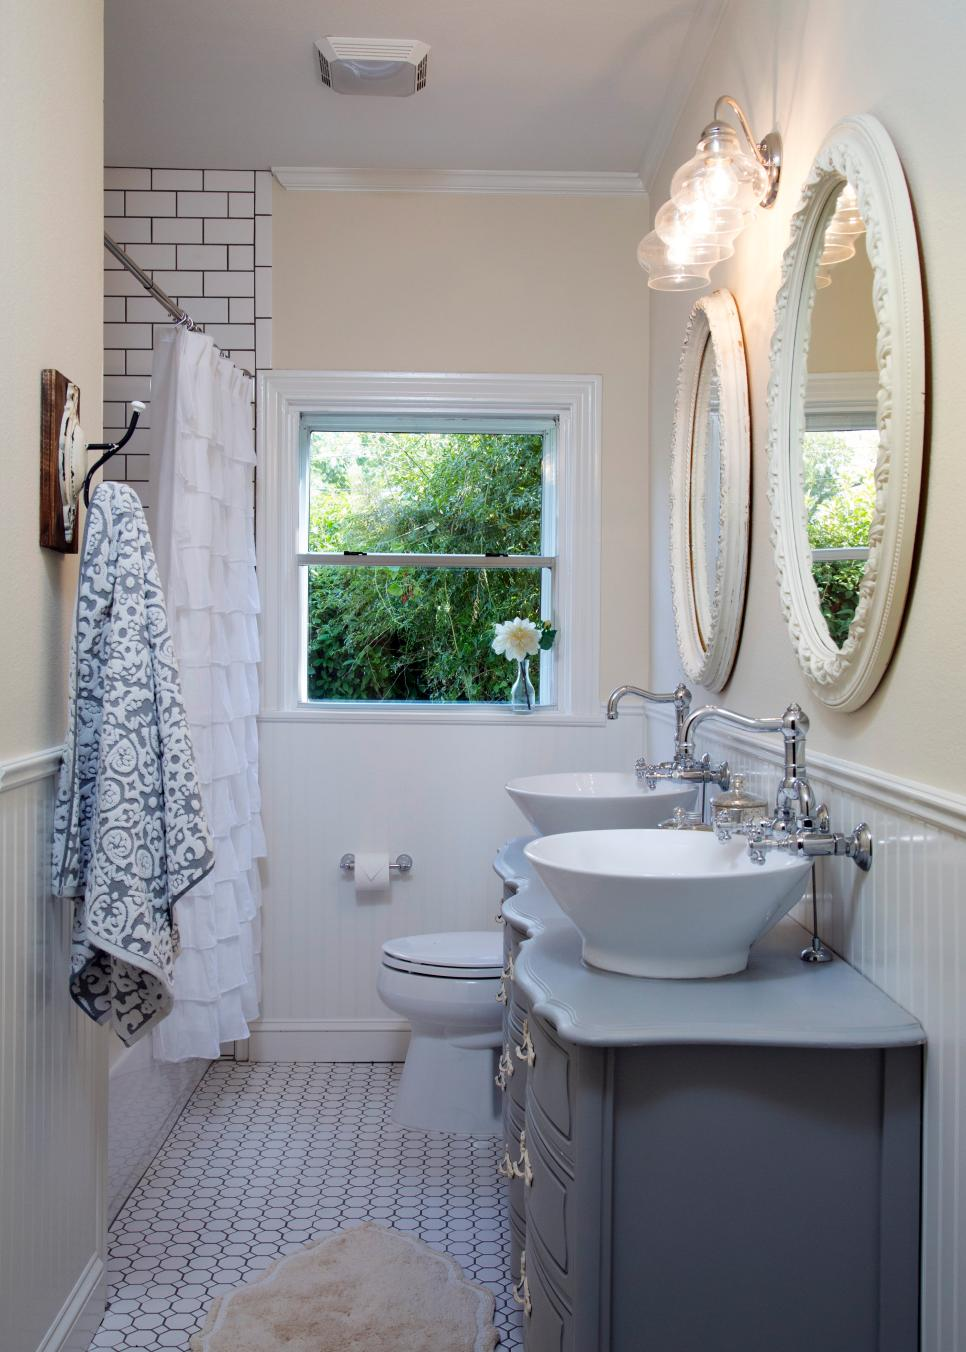 Fixer upper bathroom before afters house of hargrove for Bathroom designs photos